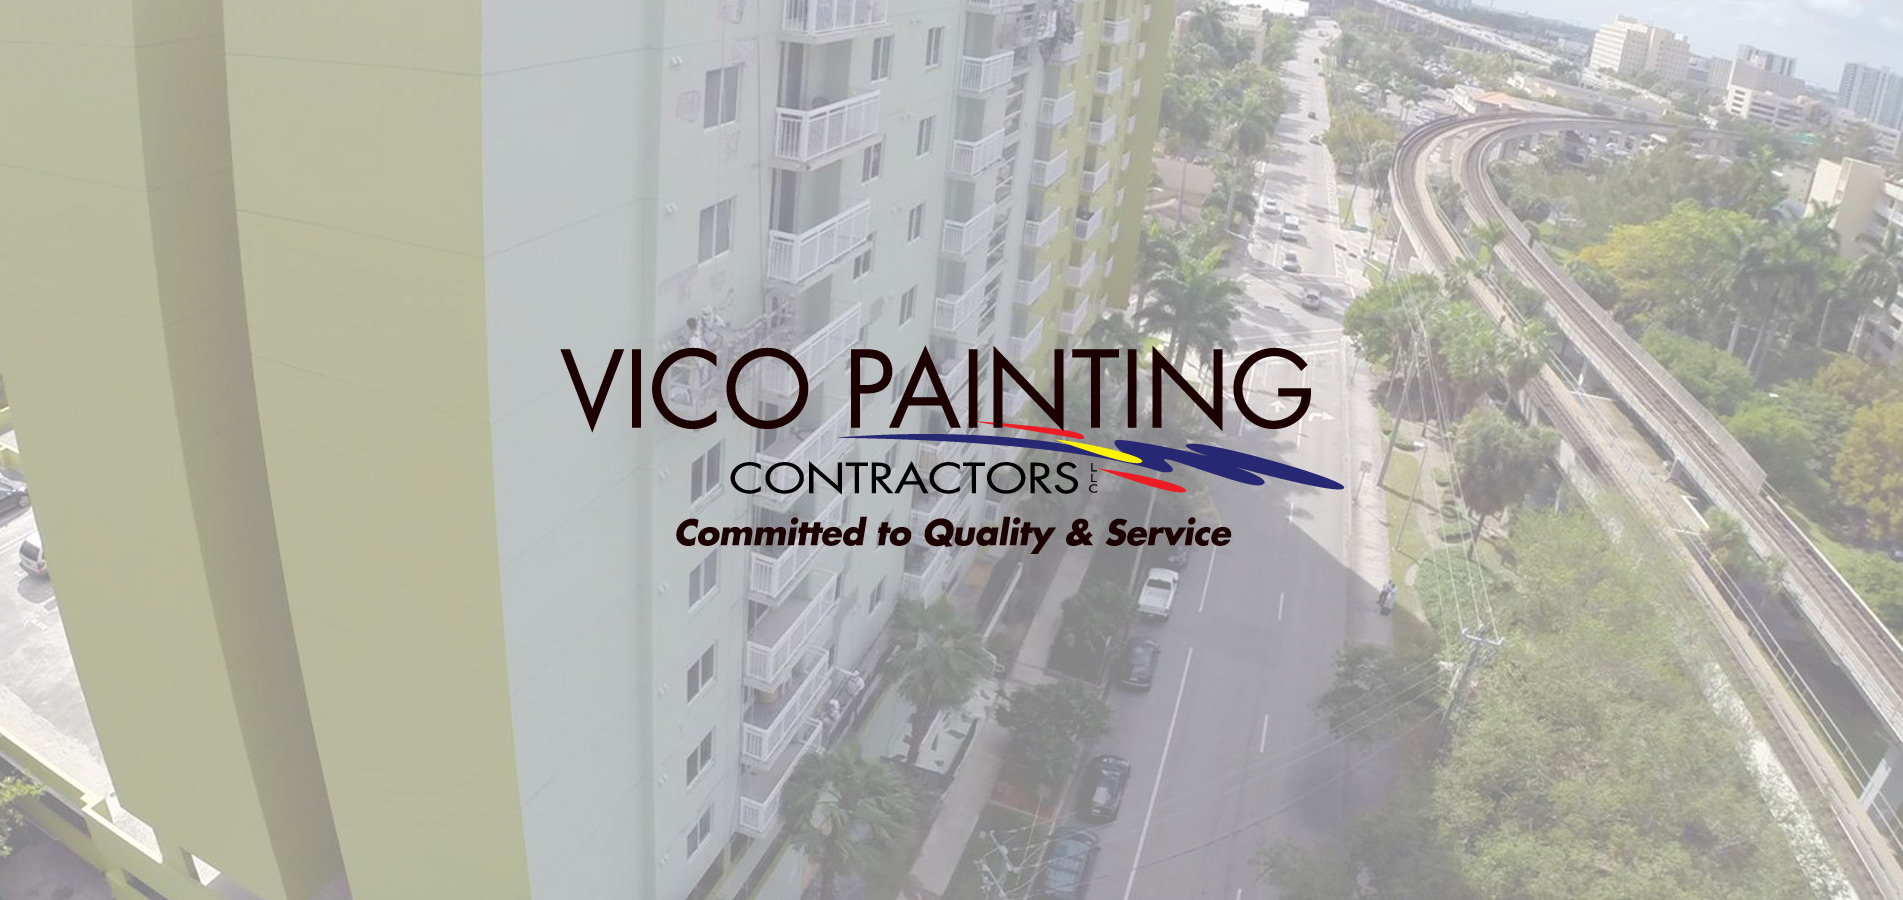 Vico painting contractors professional